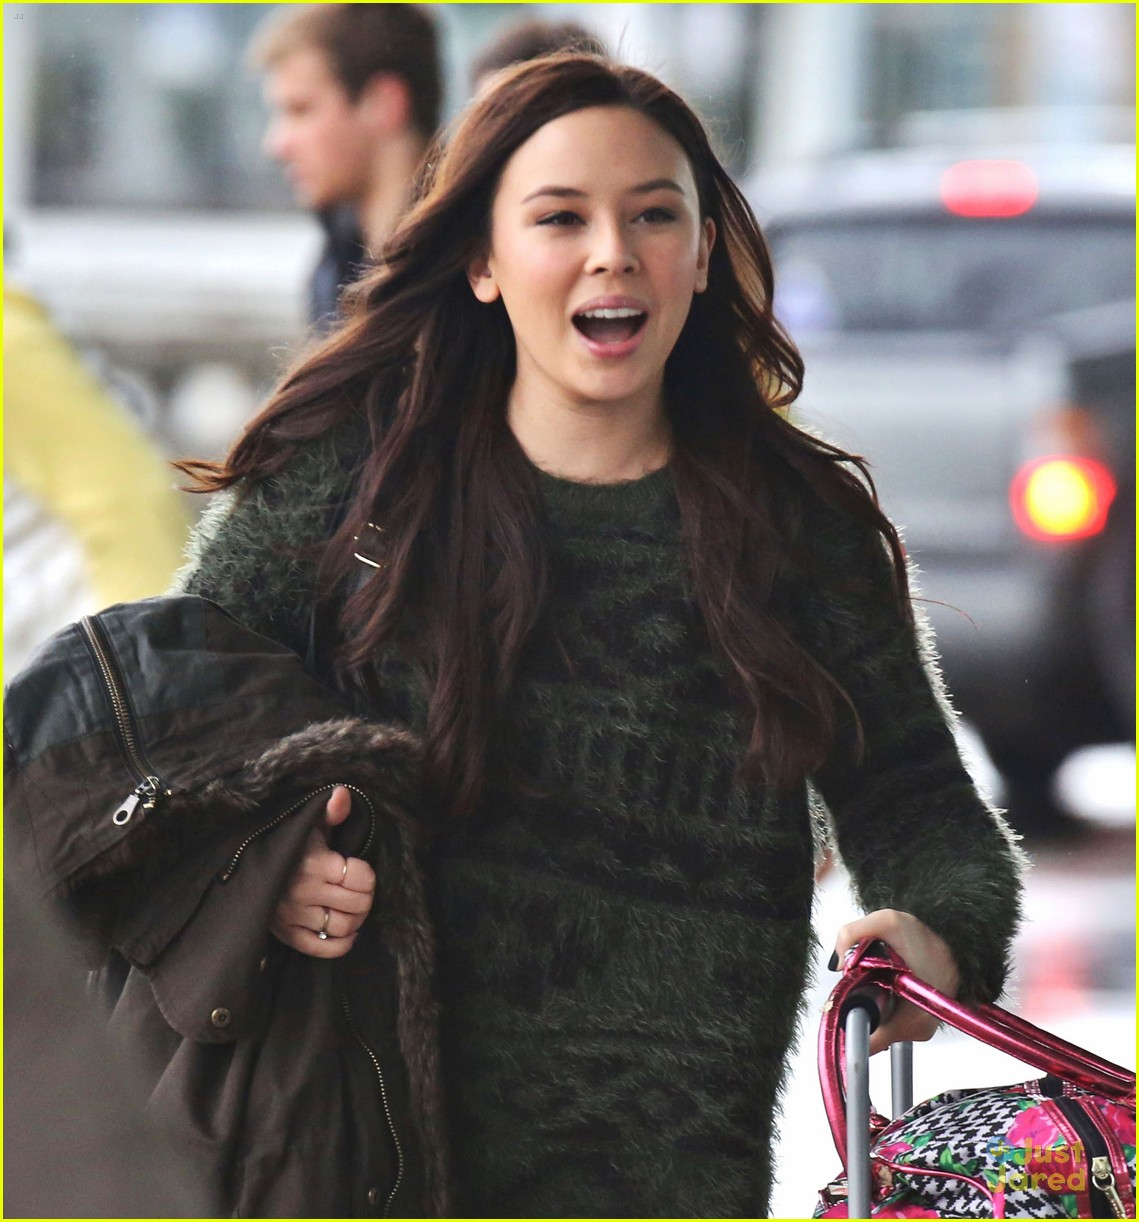 malese jow birthday